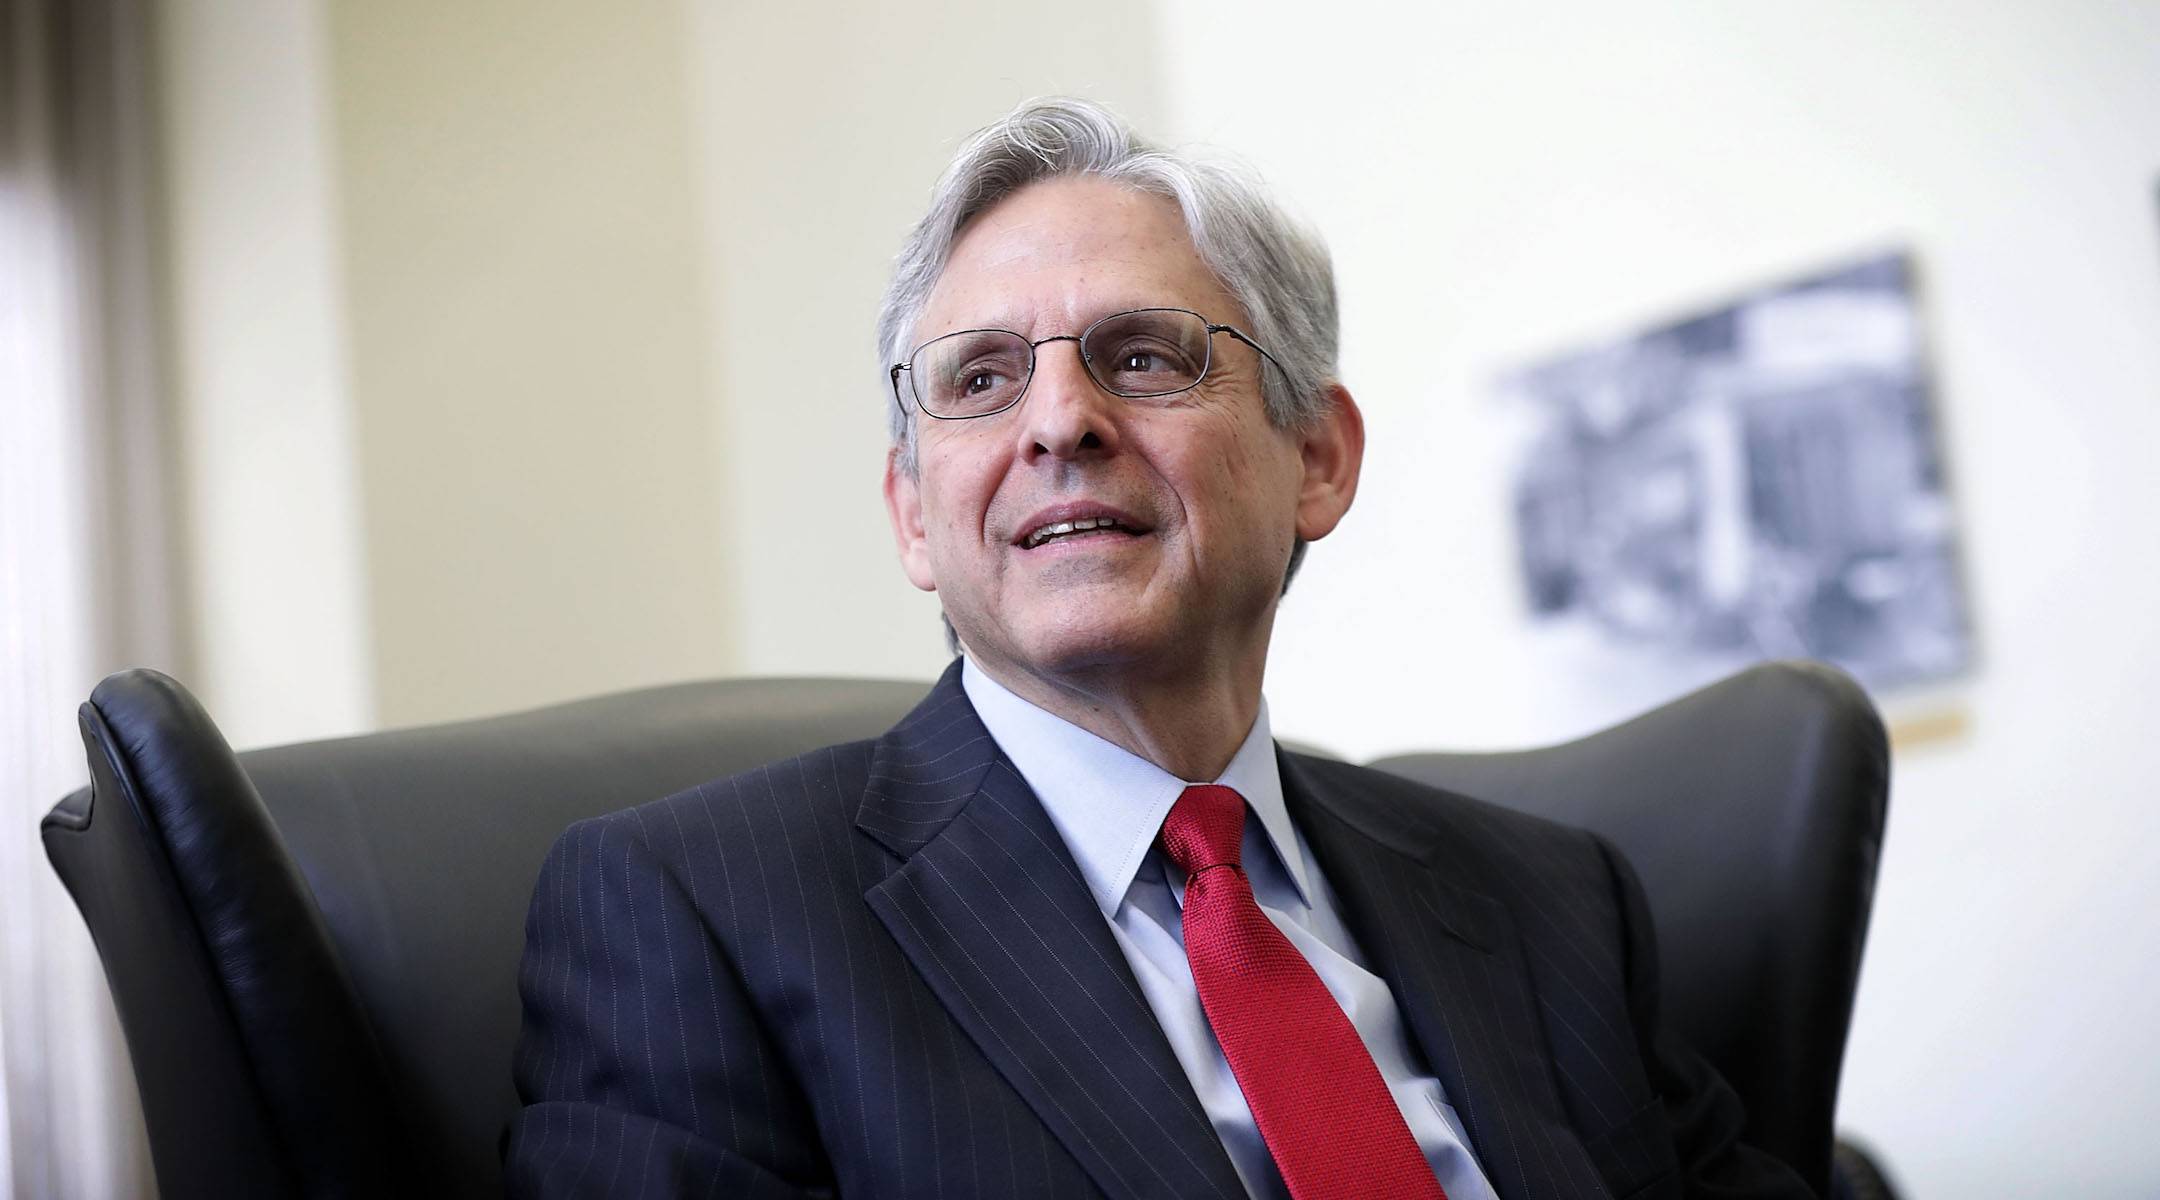 Merrick Garland, shown here in 2016, has been nominated to be the next attorney general. (Alex Wong/Getty Images)